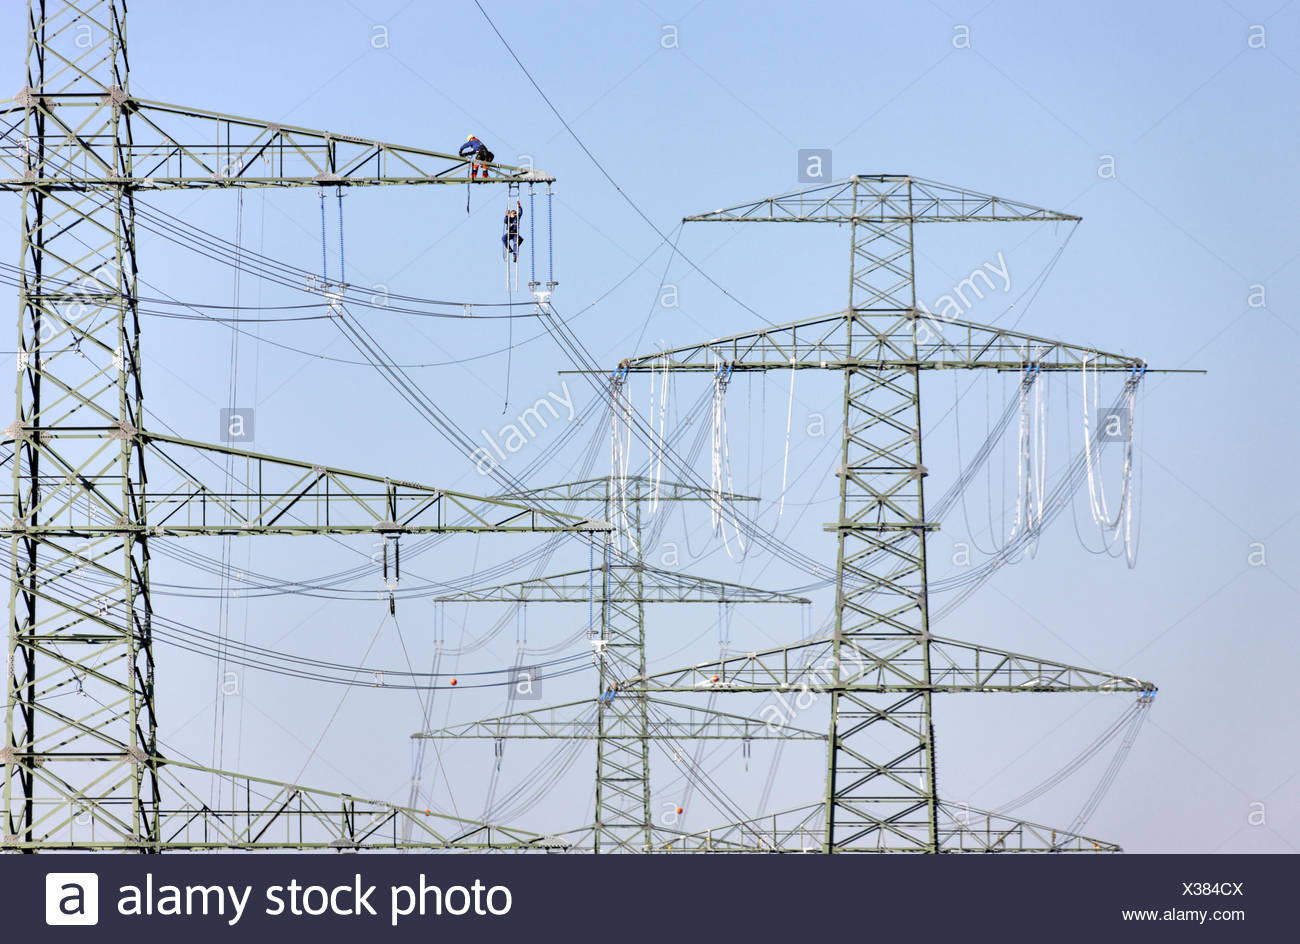 Man On High Voltage Wire : Wires section stock photos images